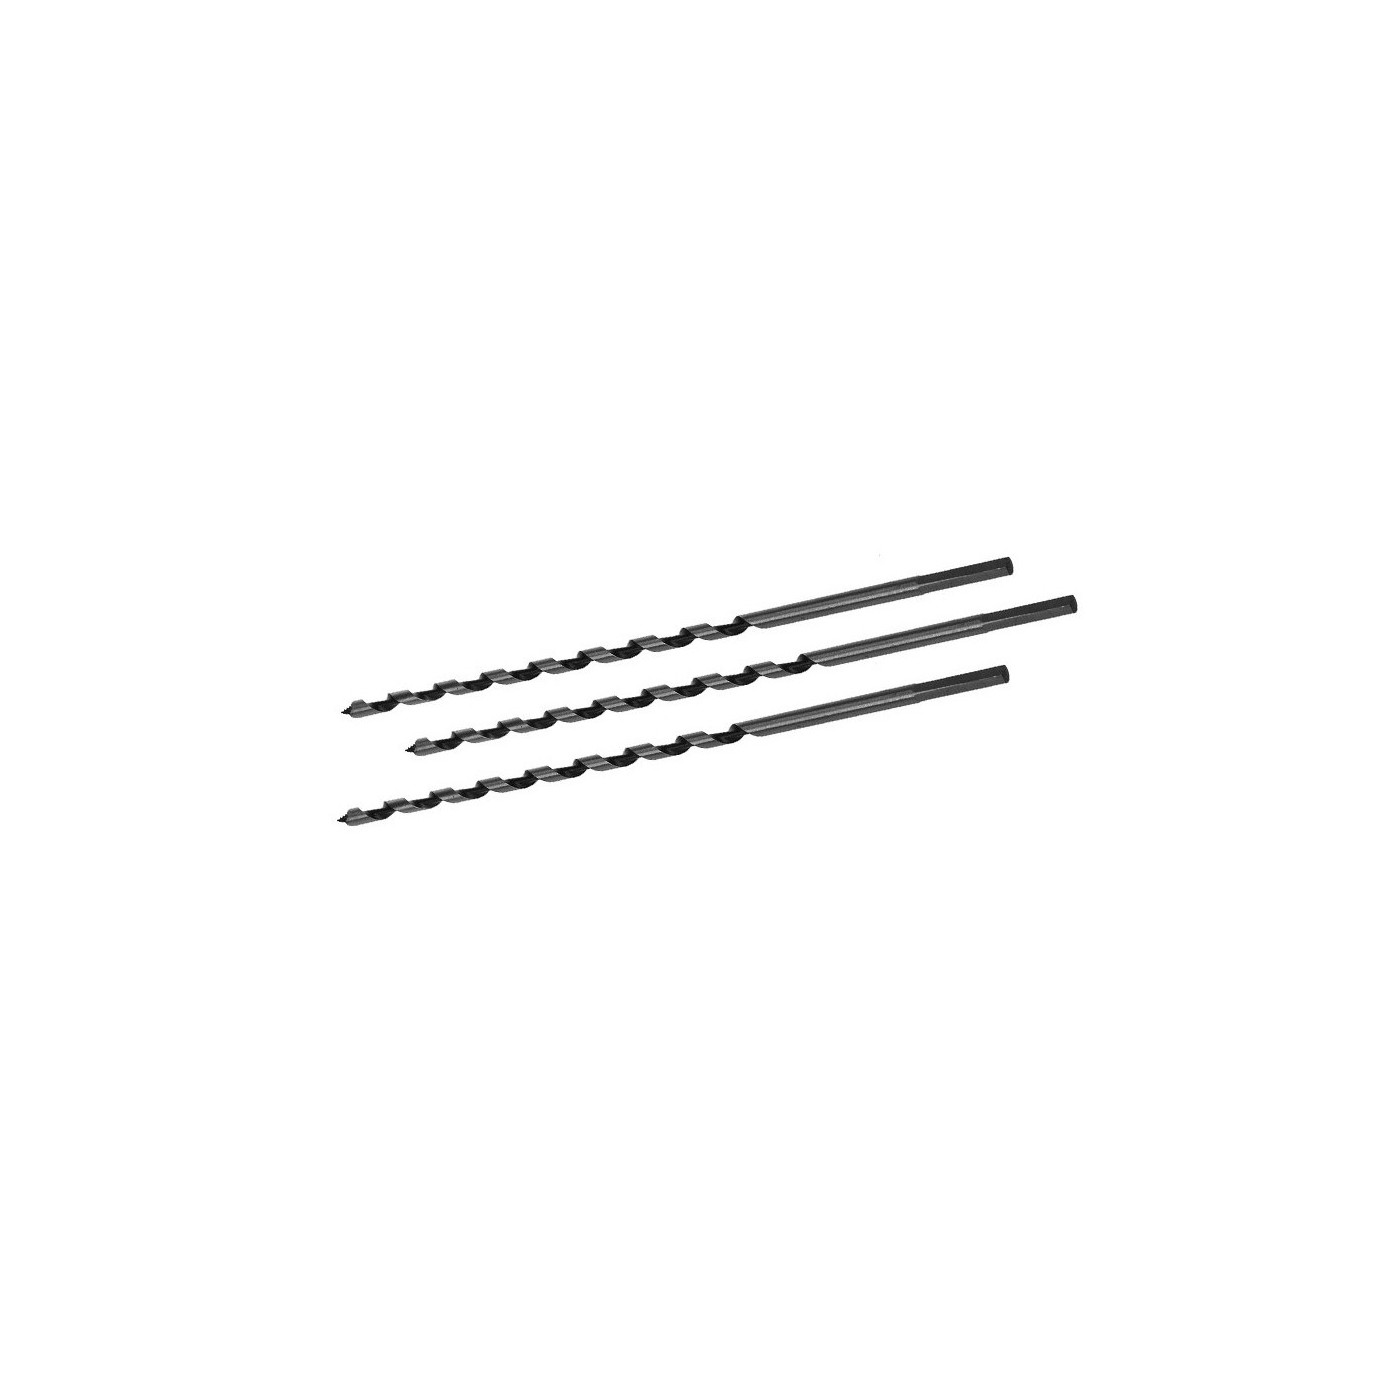 Set of 3 auger drill bits for wood, 6x230 mm  - 1